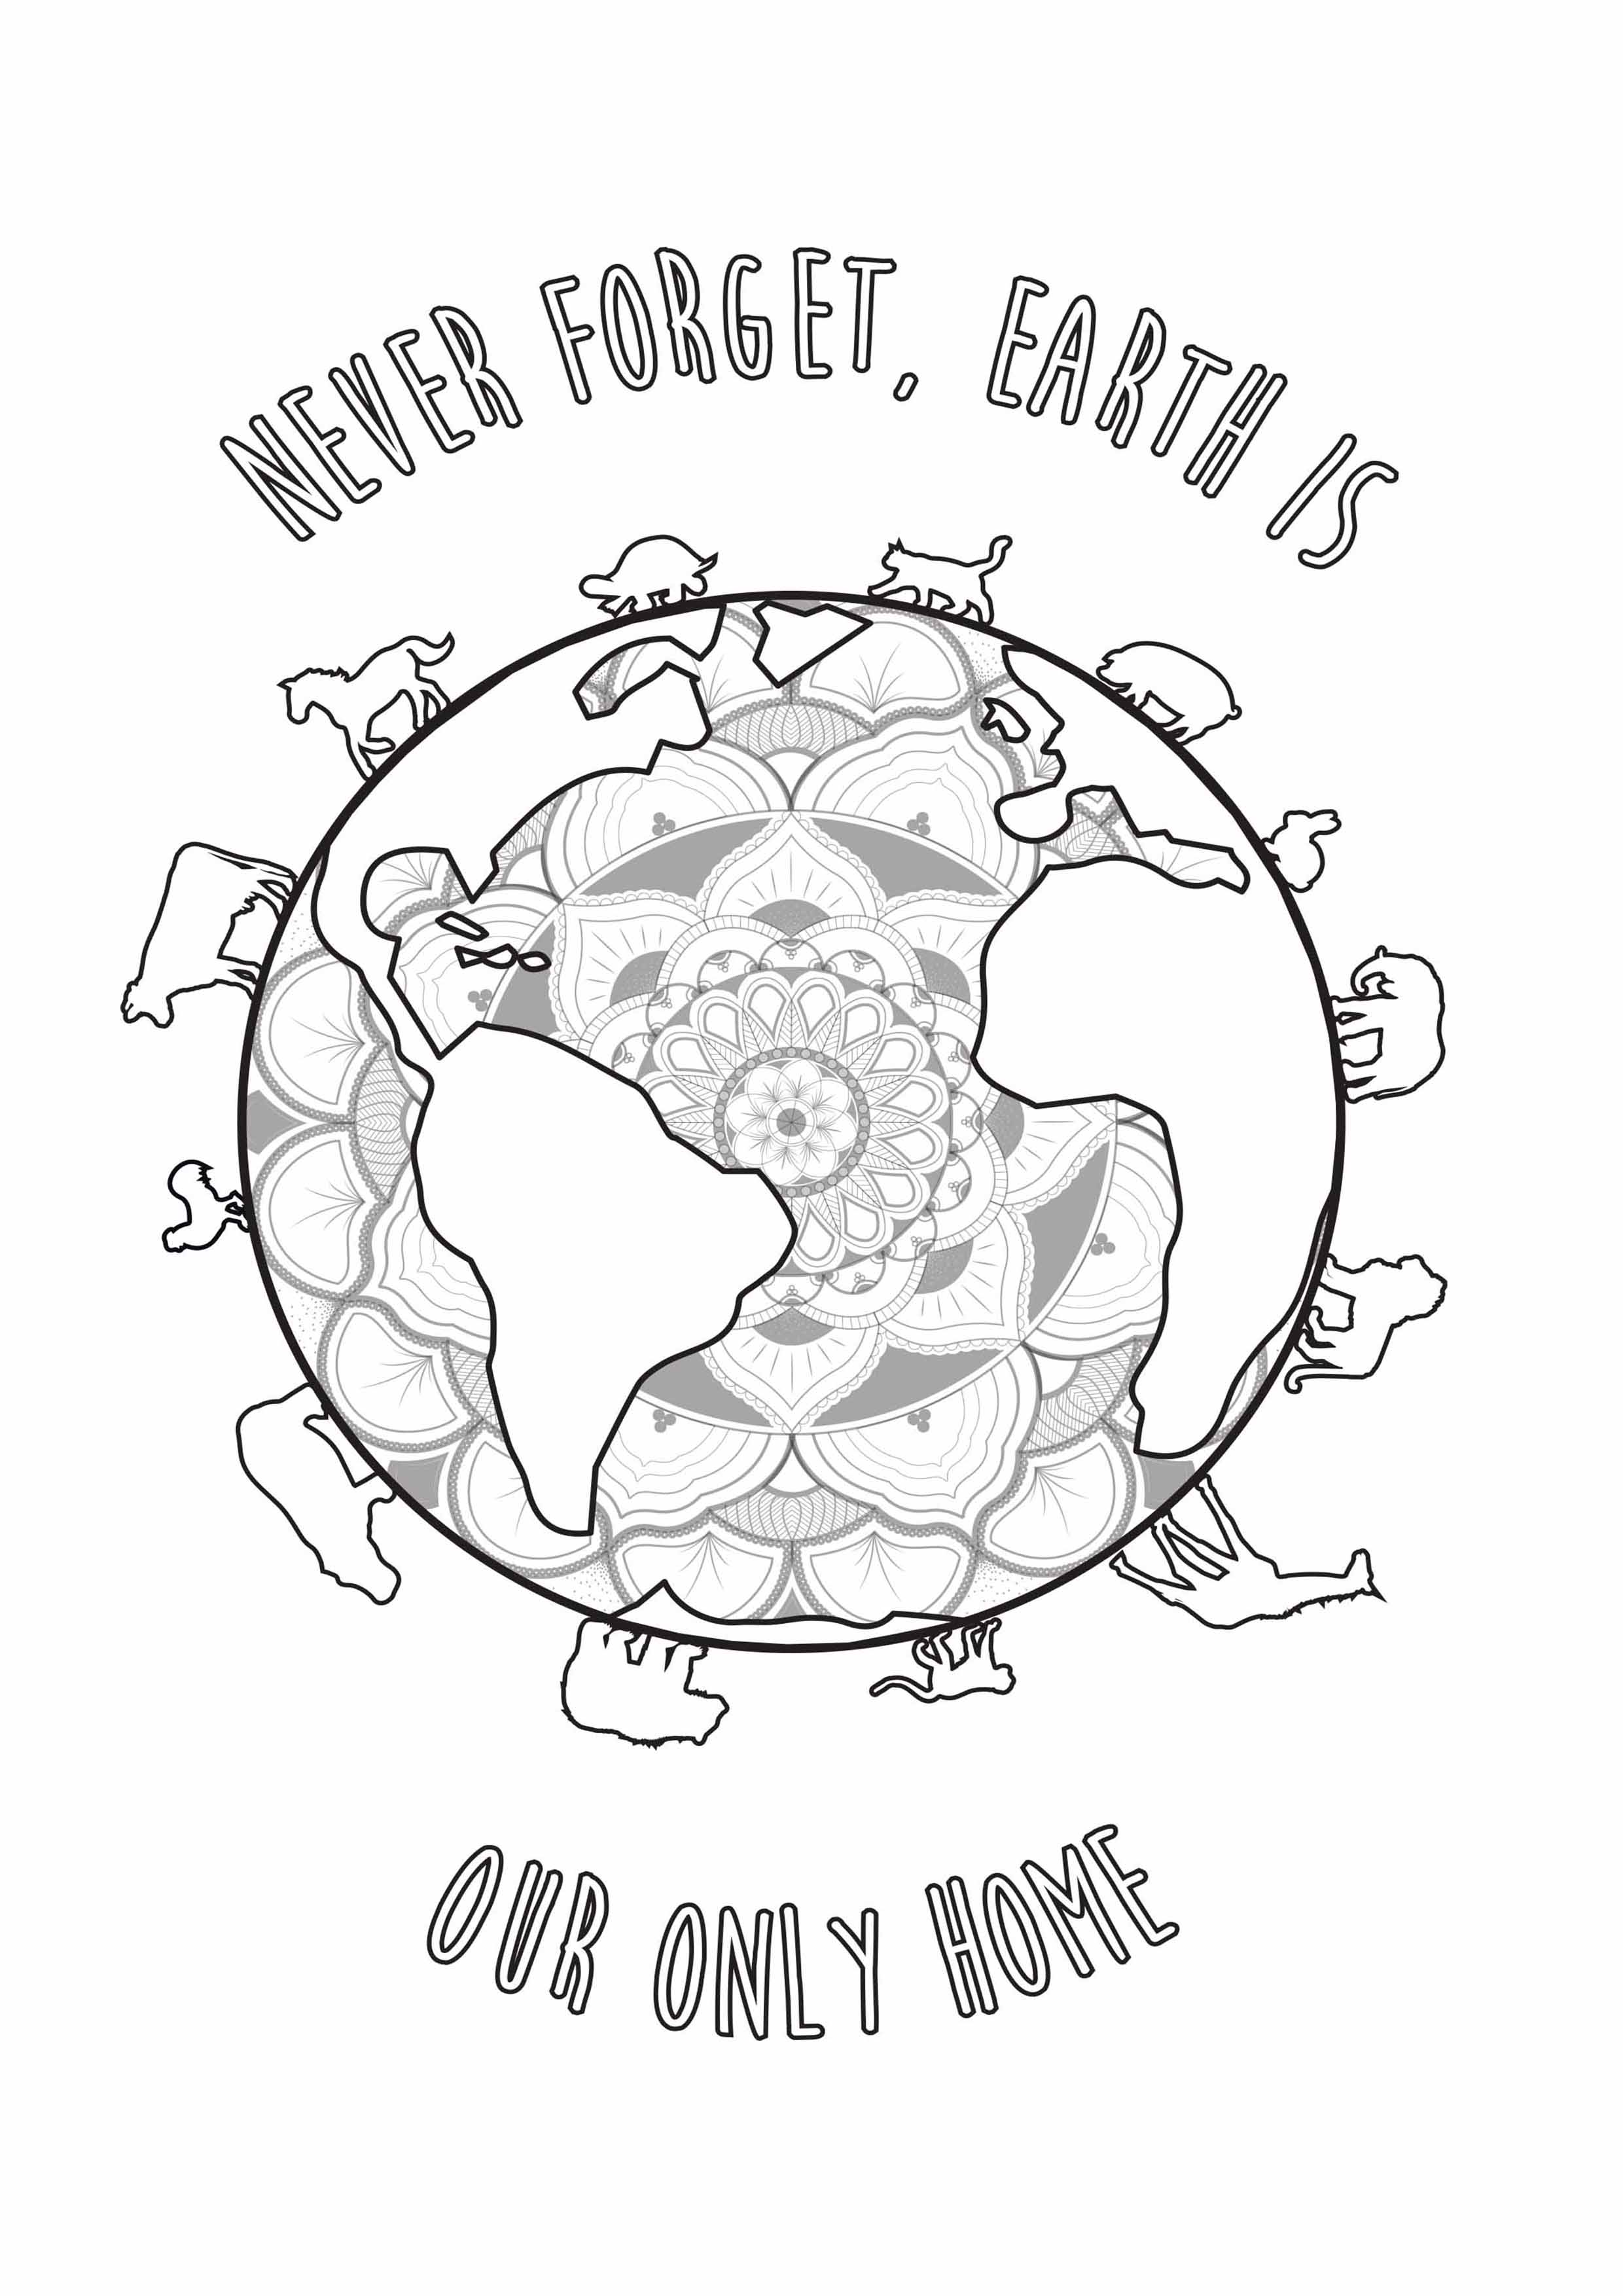 Cute Coloring For The Earth Day With An Inspiring Quote